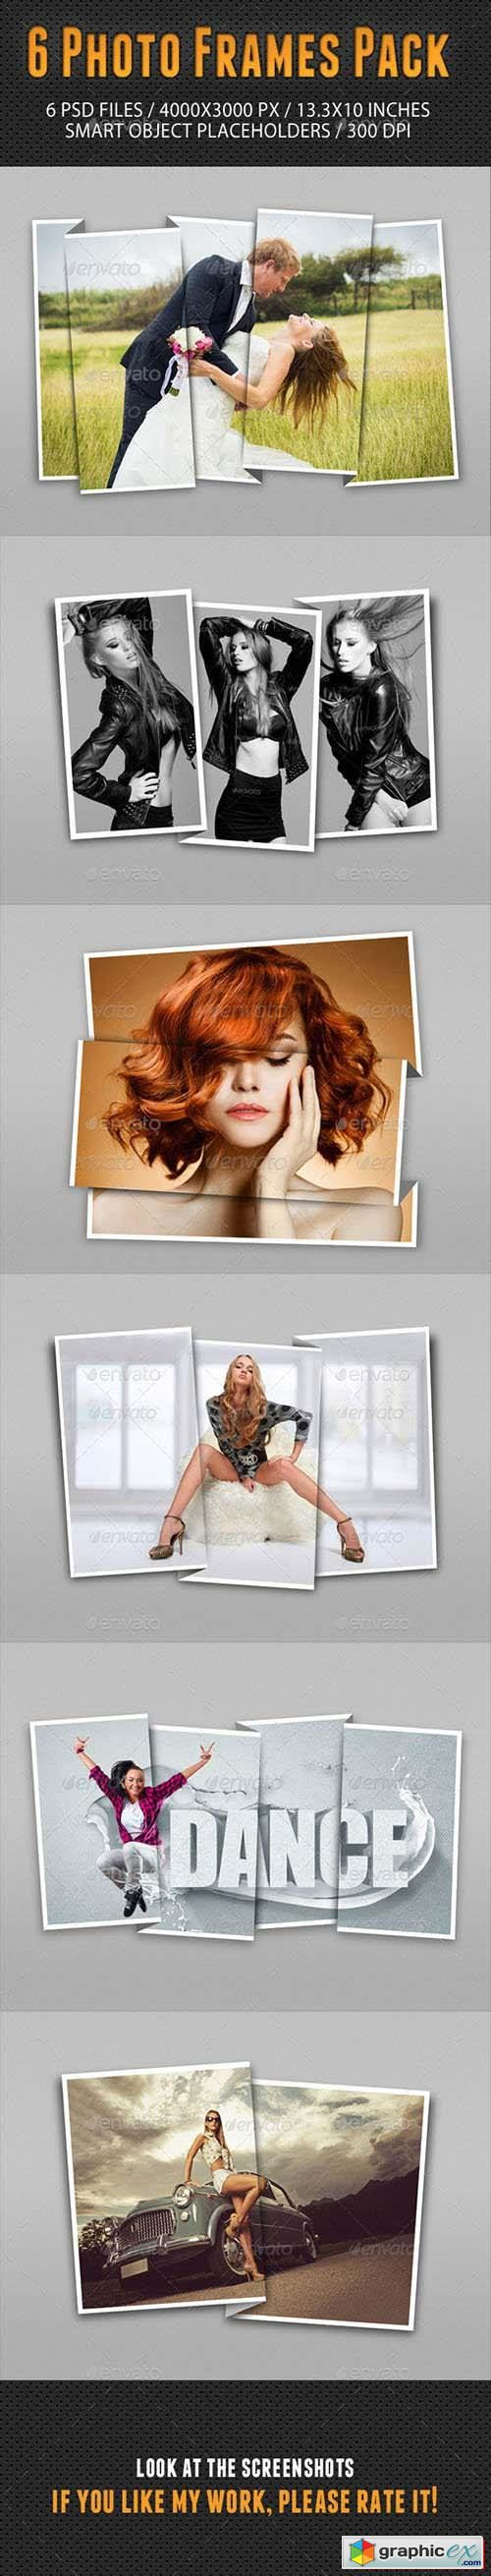 Photo Frames Pack 13